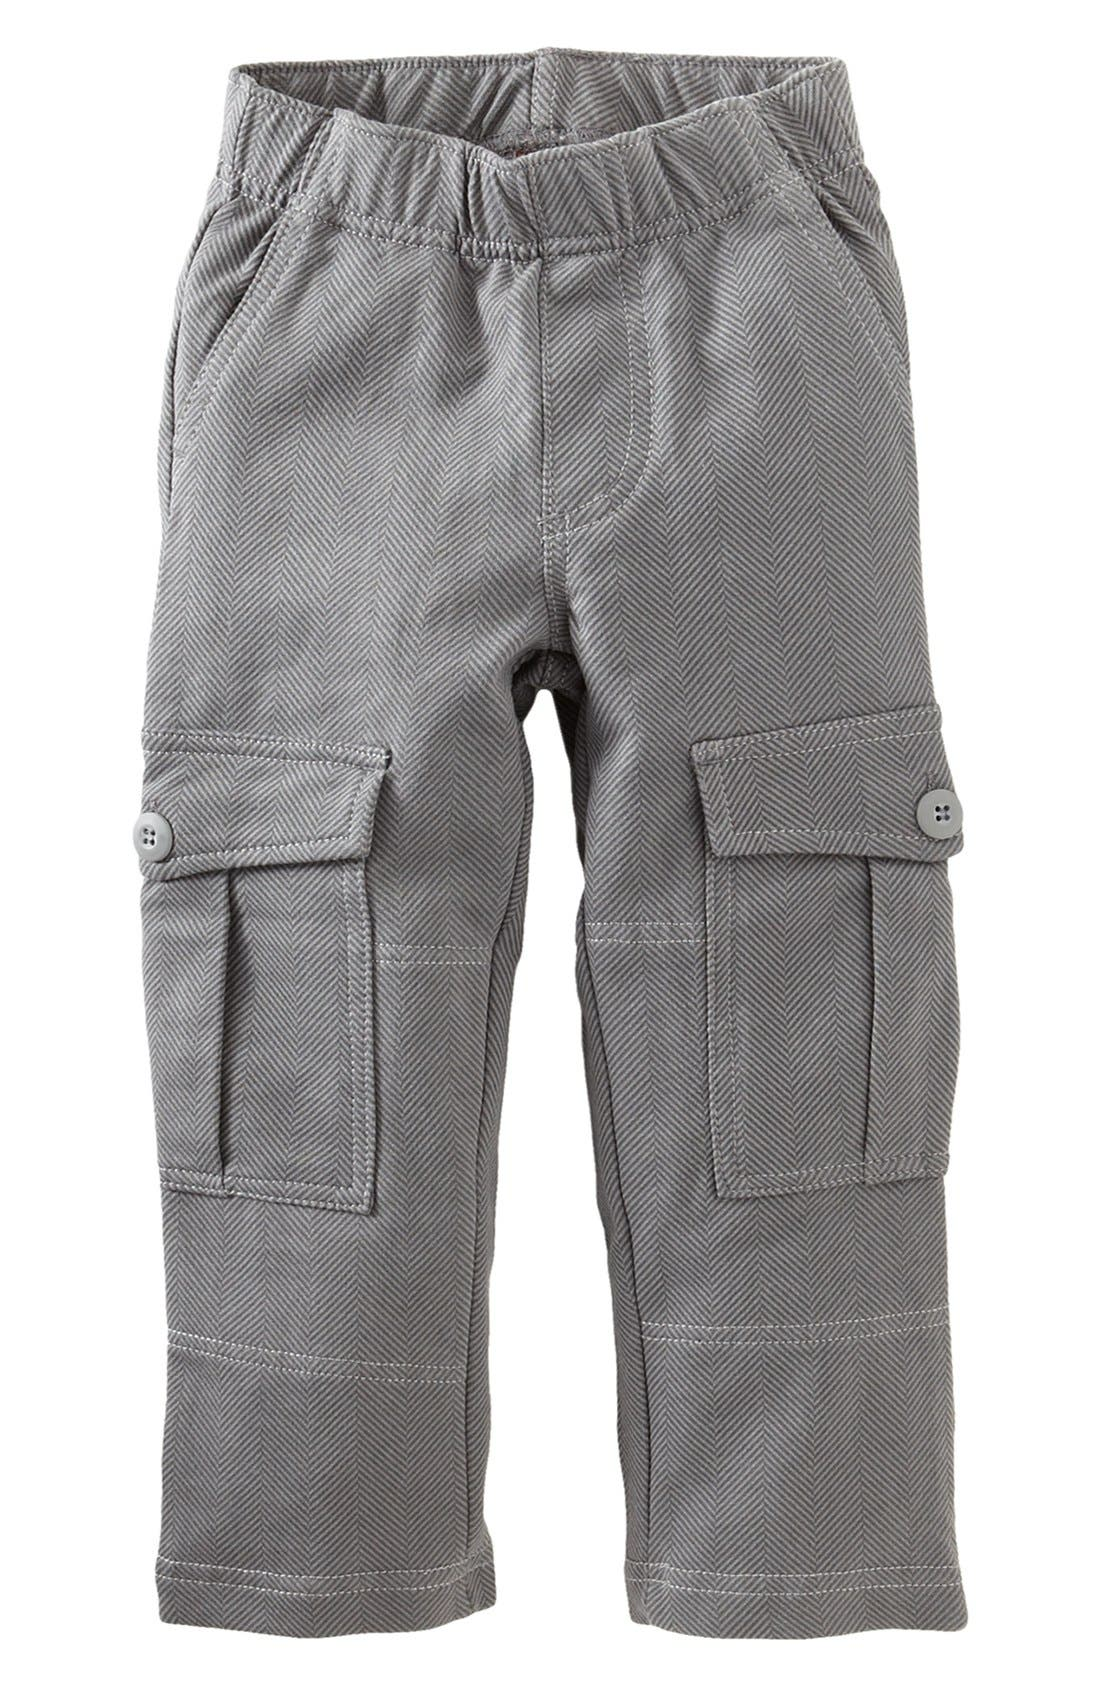 Alternate Image 1 Selected - Tea Collection Herringbone Cargo Pants (Toddler Boys)